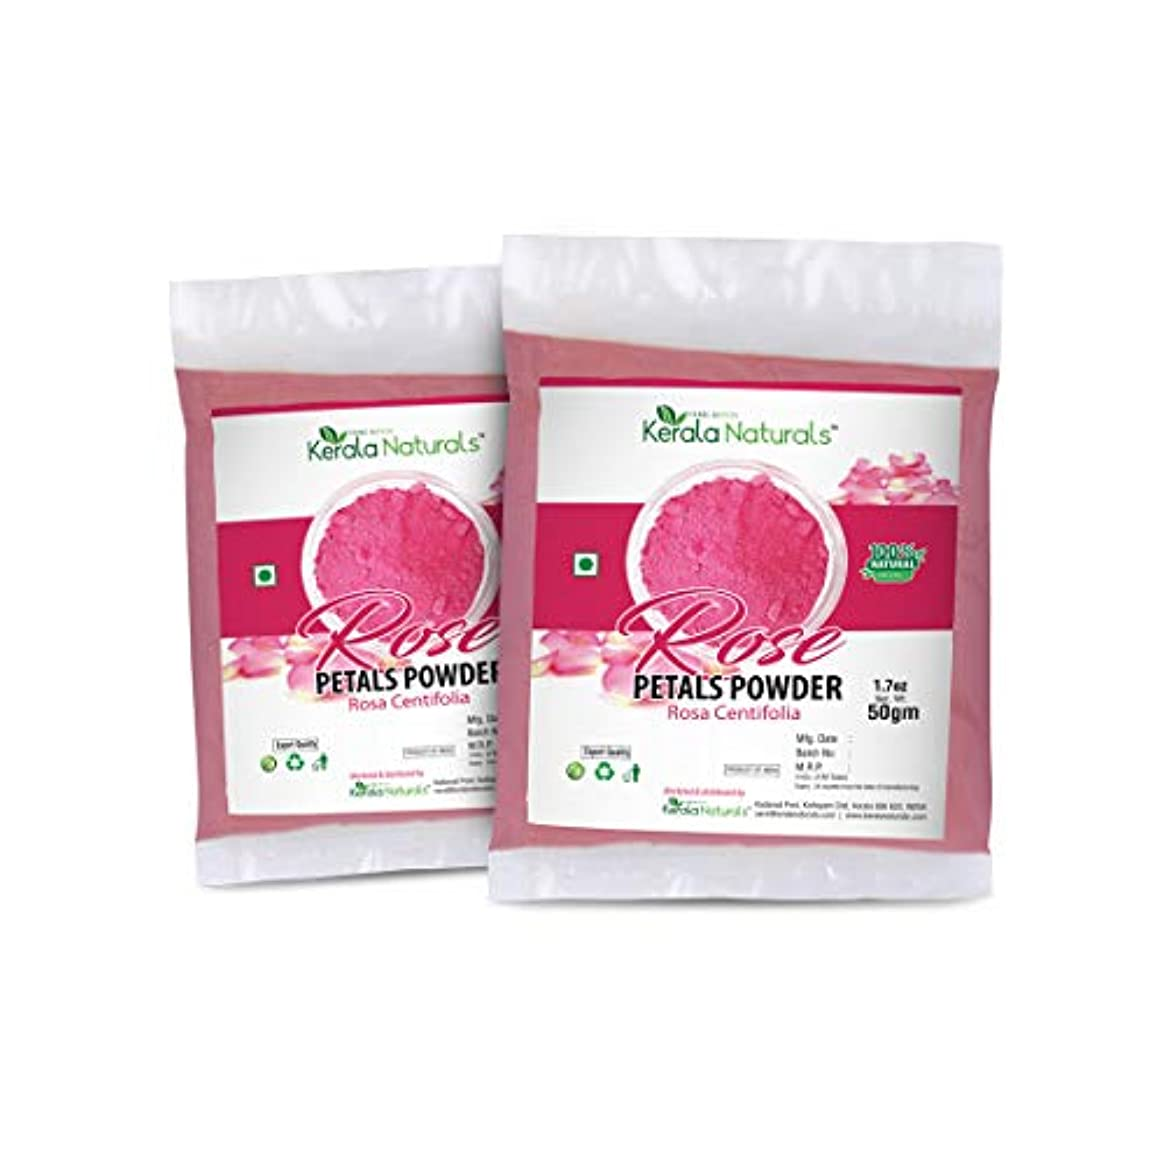 ハドル放射するモートRose Petals Powder (Rosa Centifolia) for Anti Ageing- 100gm (50gm x 2 Packs) - Rejuvenating and Moisturising Face...